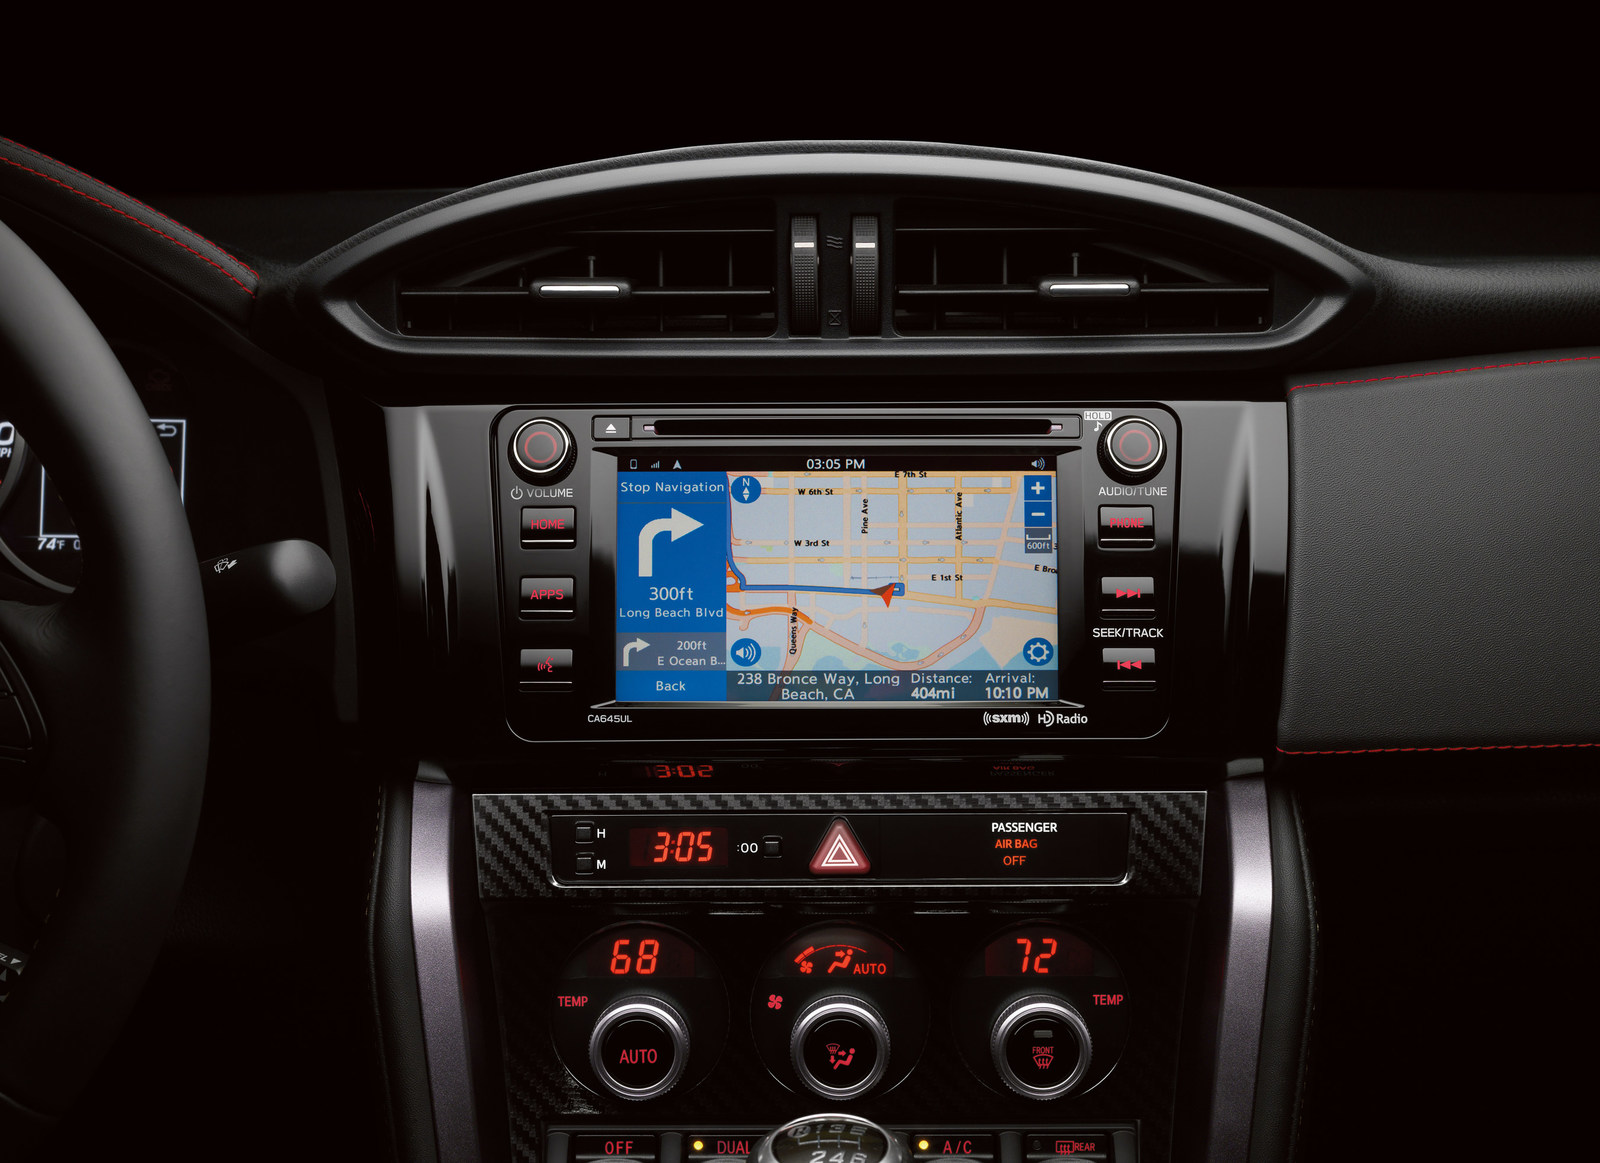 2017 Subaru BRZ adds Magellan navigation app to multimedia system